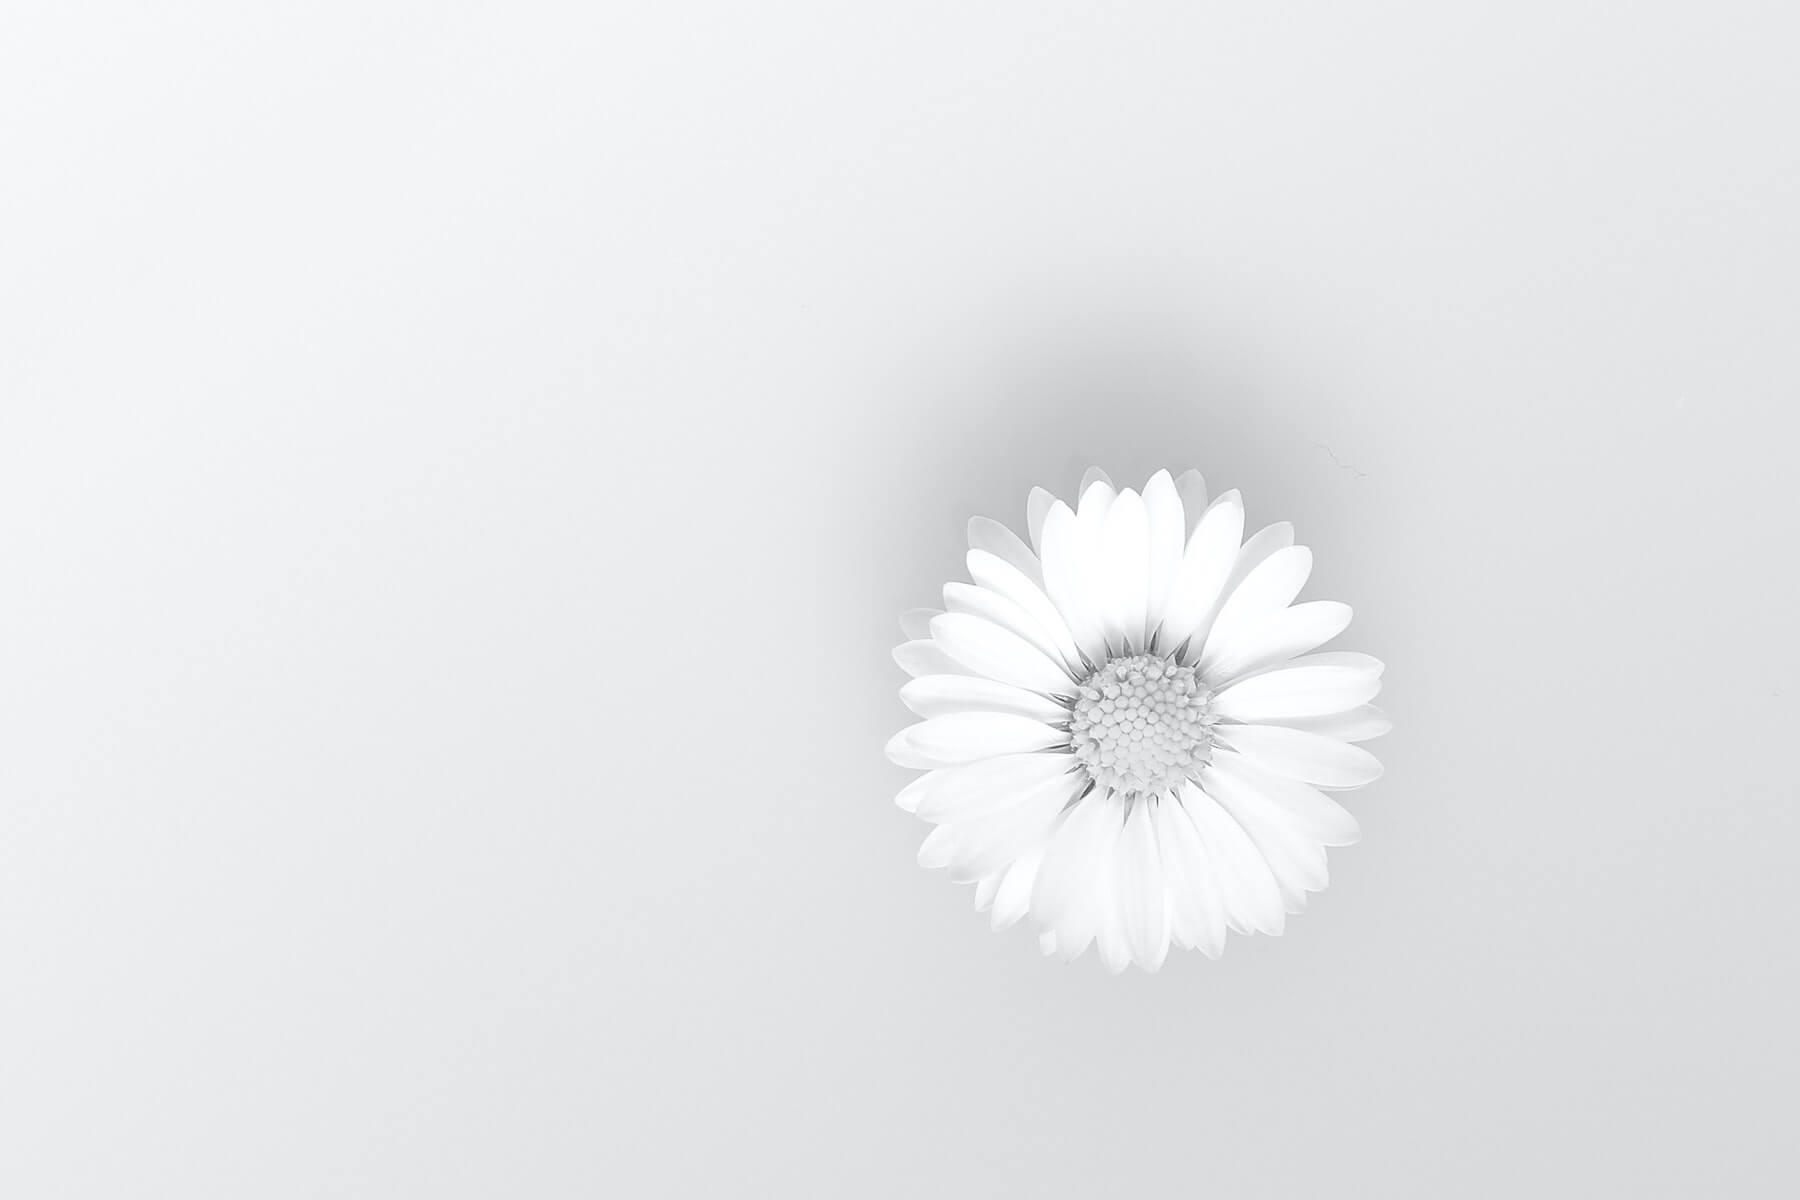 daisy flower on white background nursing daisy award compassion fatigue in nursing